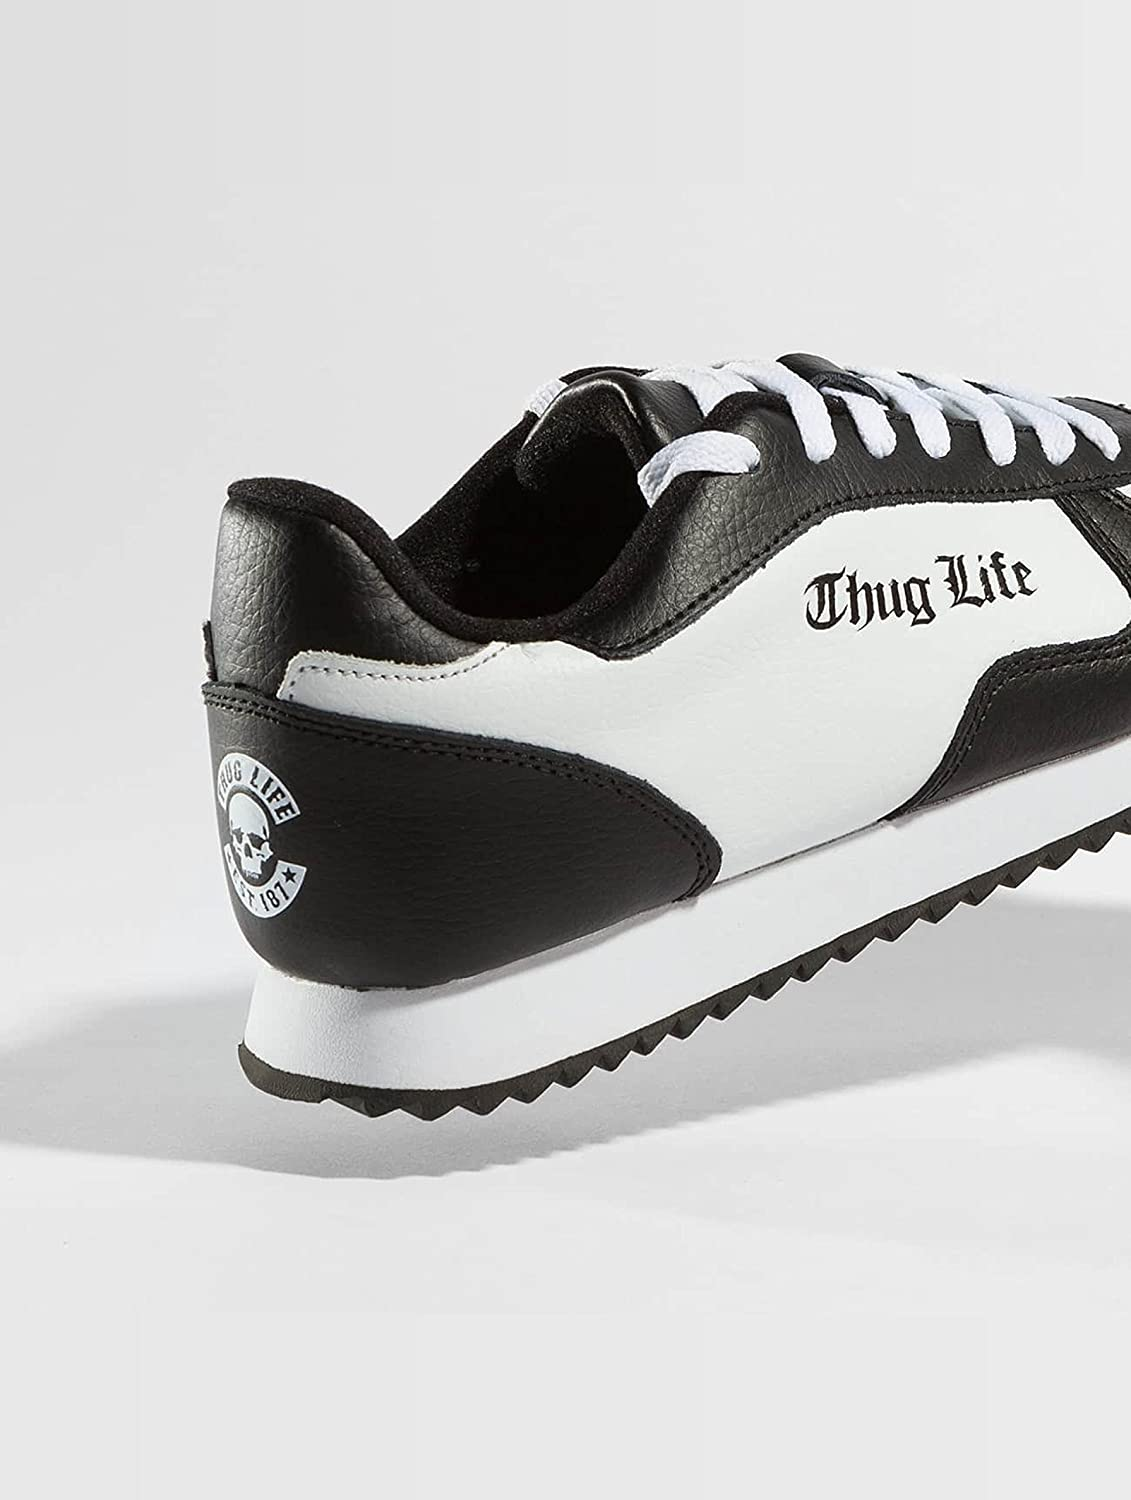 Thug Life Homme Chaussures / Baskets 187 ciqNAwx